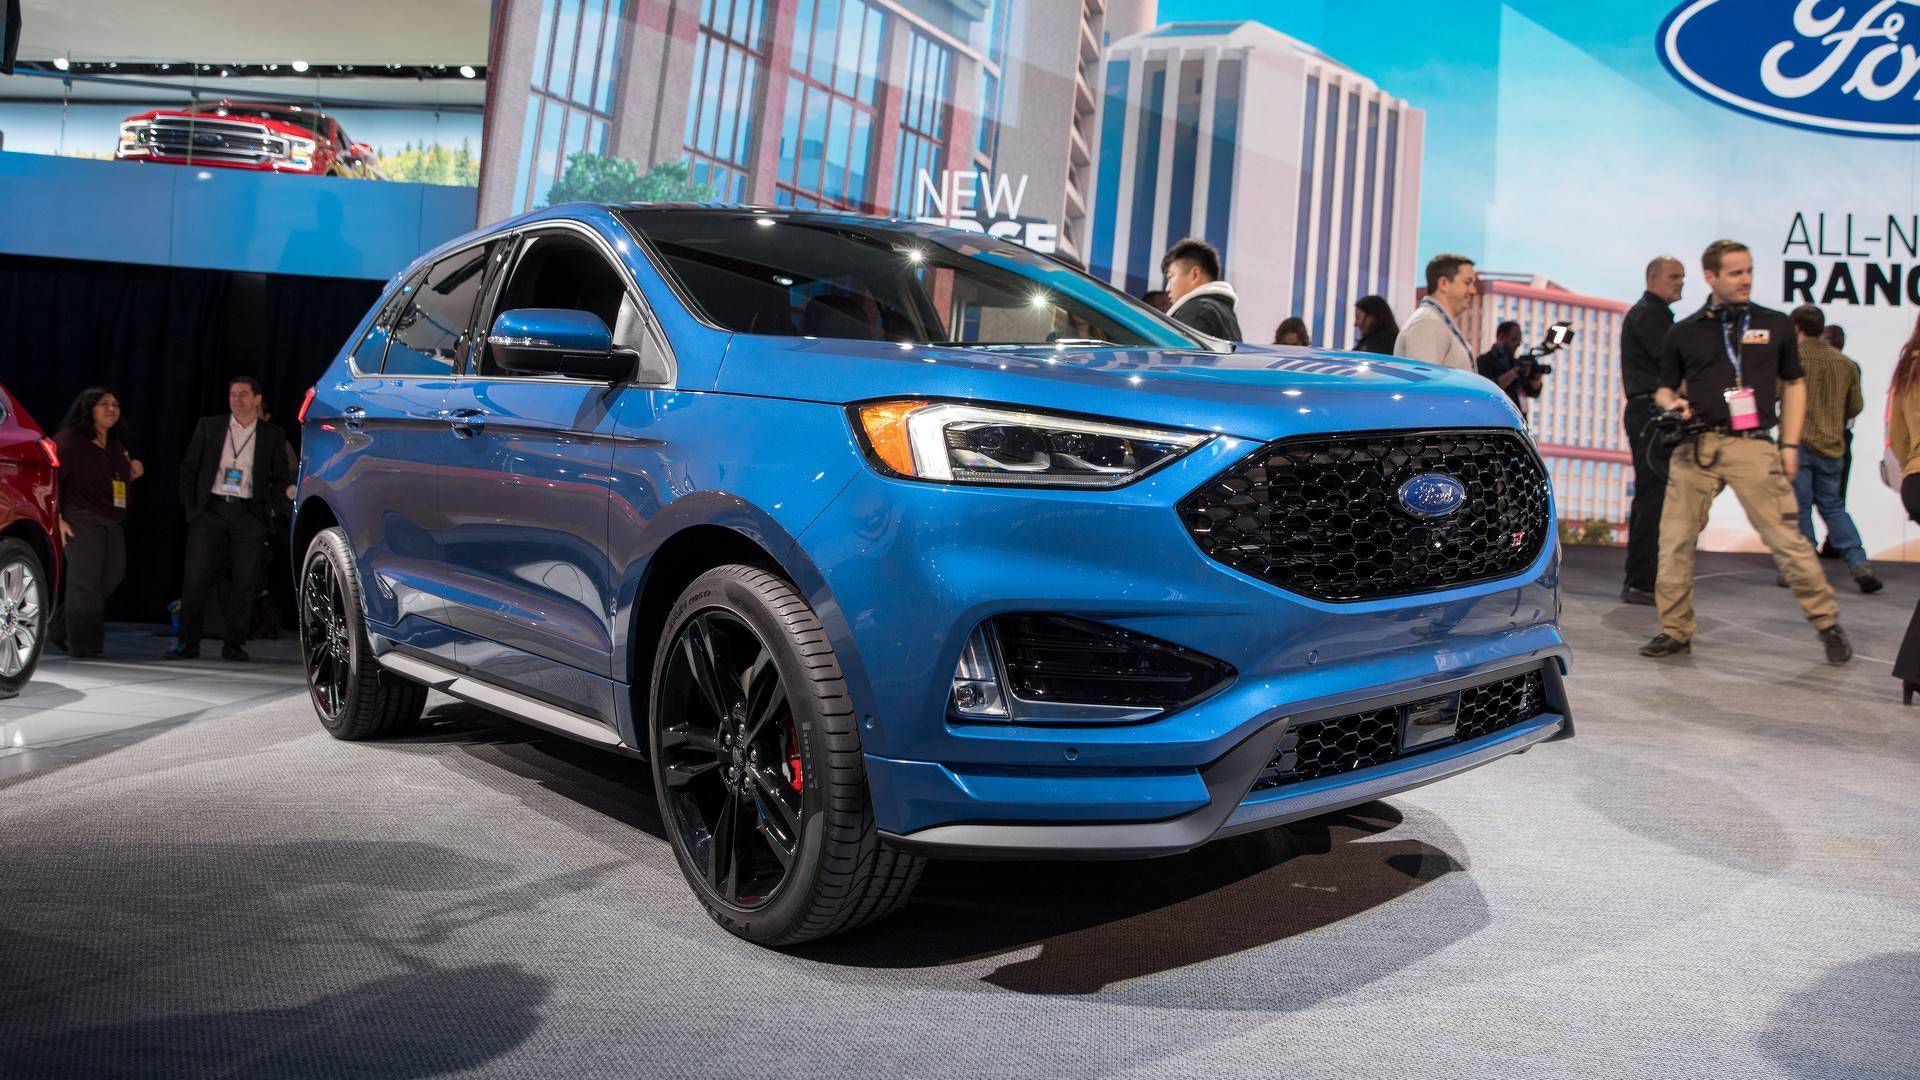 Focus St 0 60 >> VWVortex.com - 2015 Ford Edge gets official with 2.7-liter ...